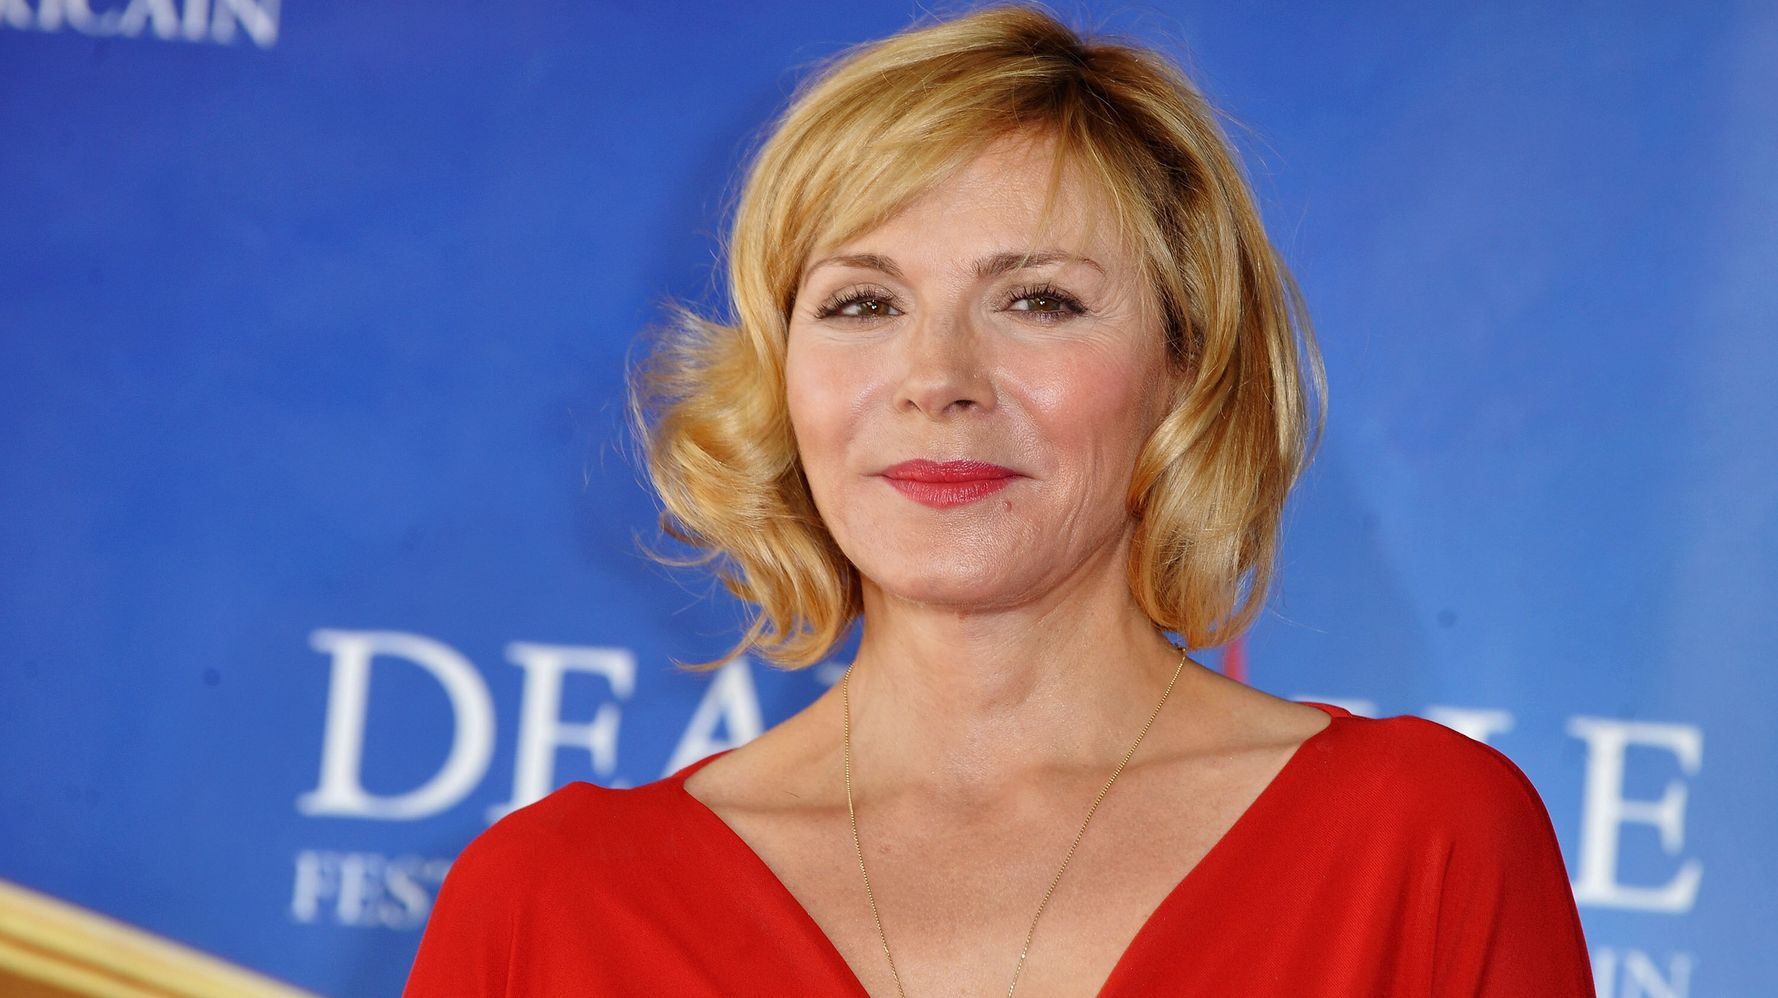 Kim Cattrall Wants Nothing To Do With The New 'Sex And The City'